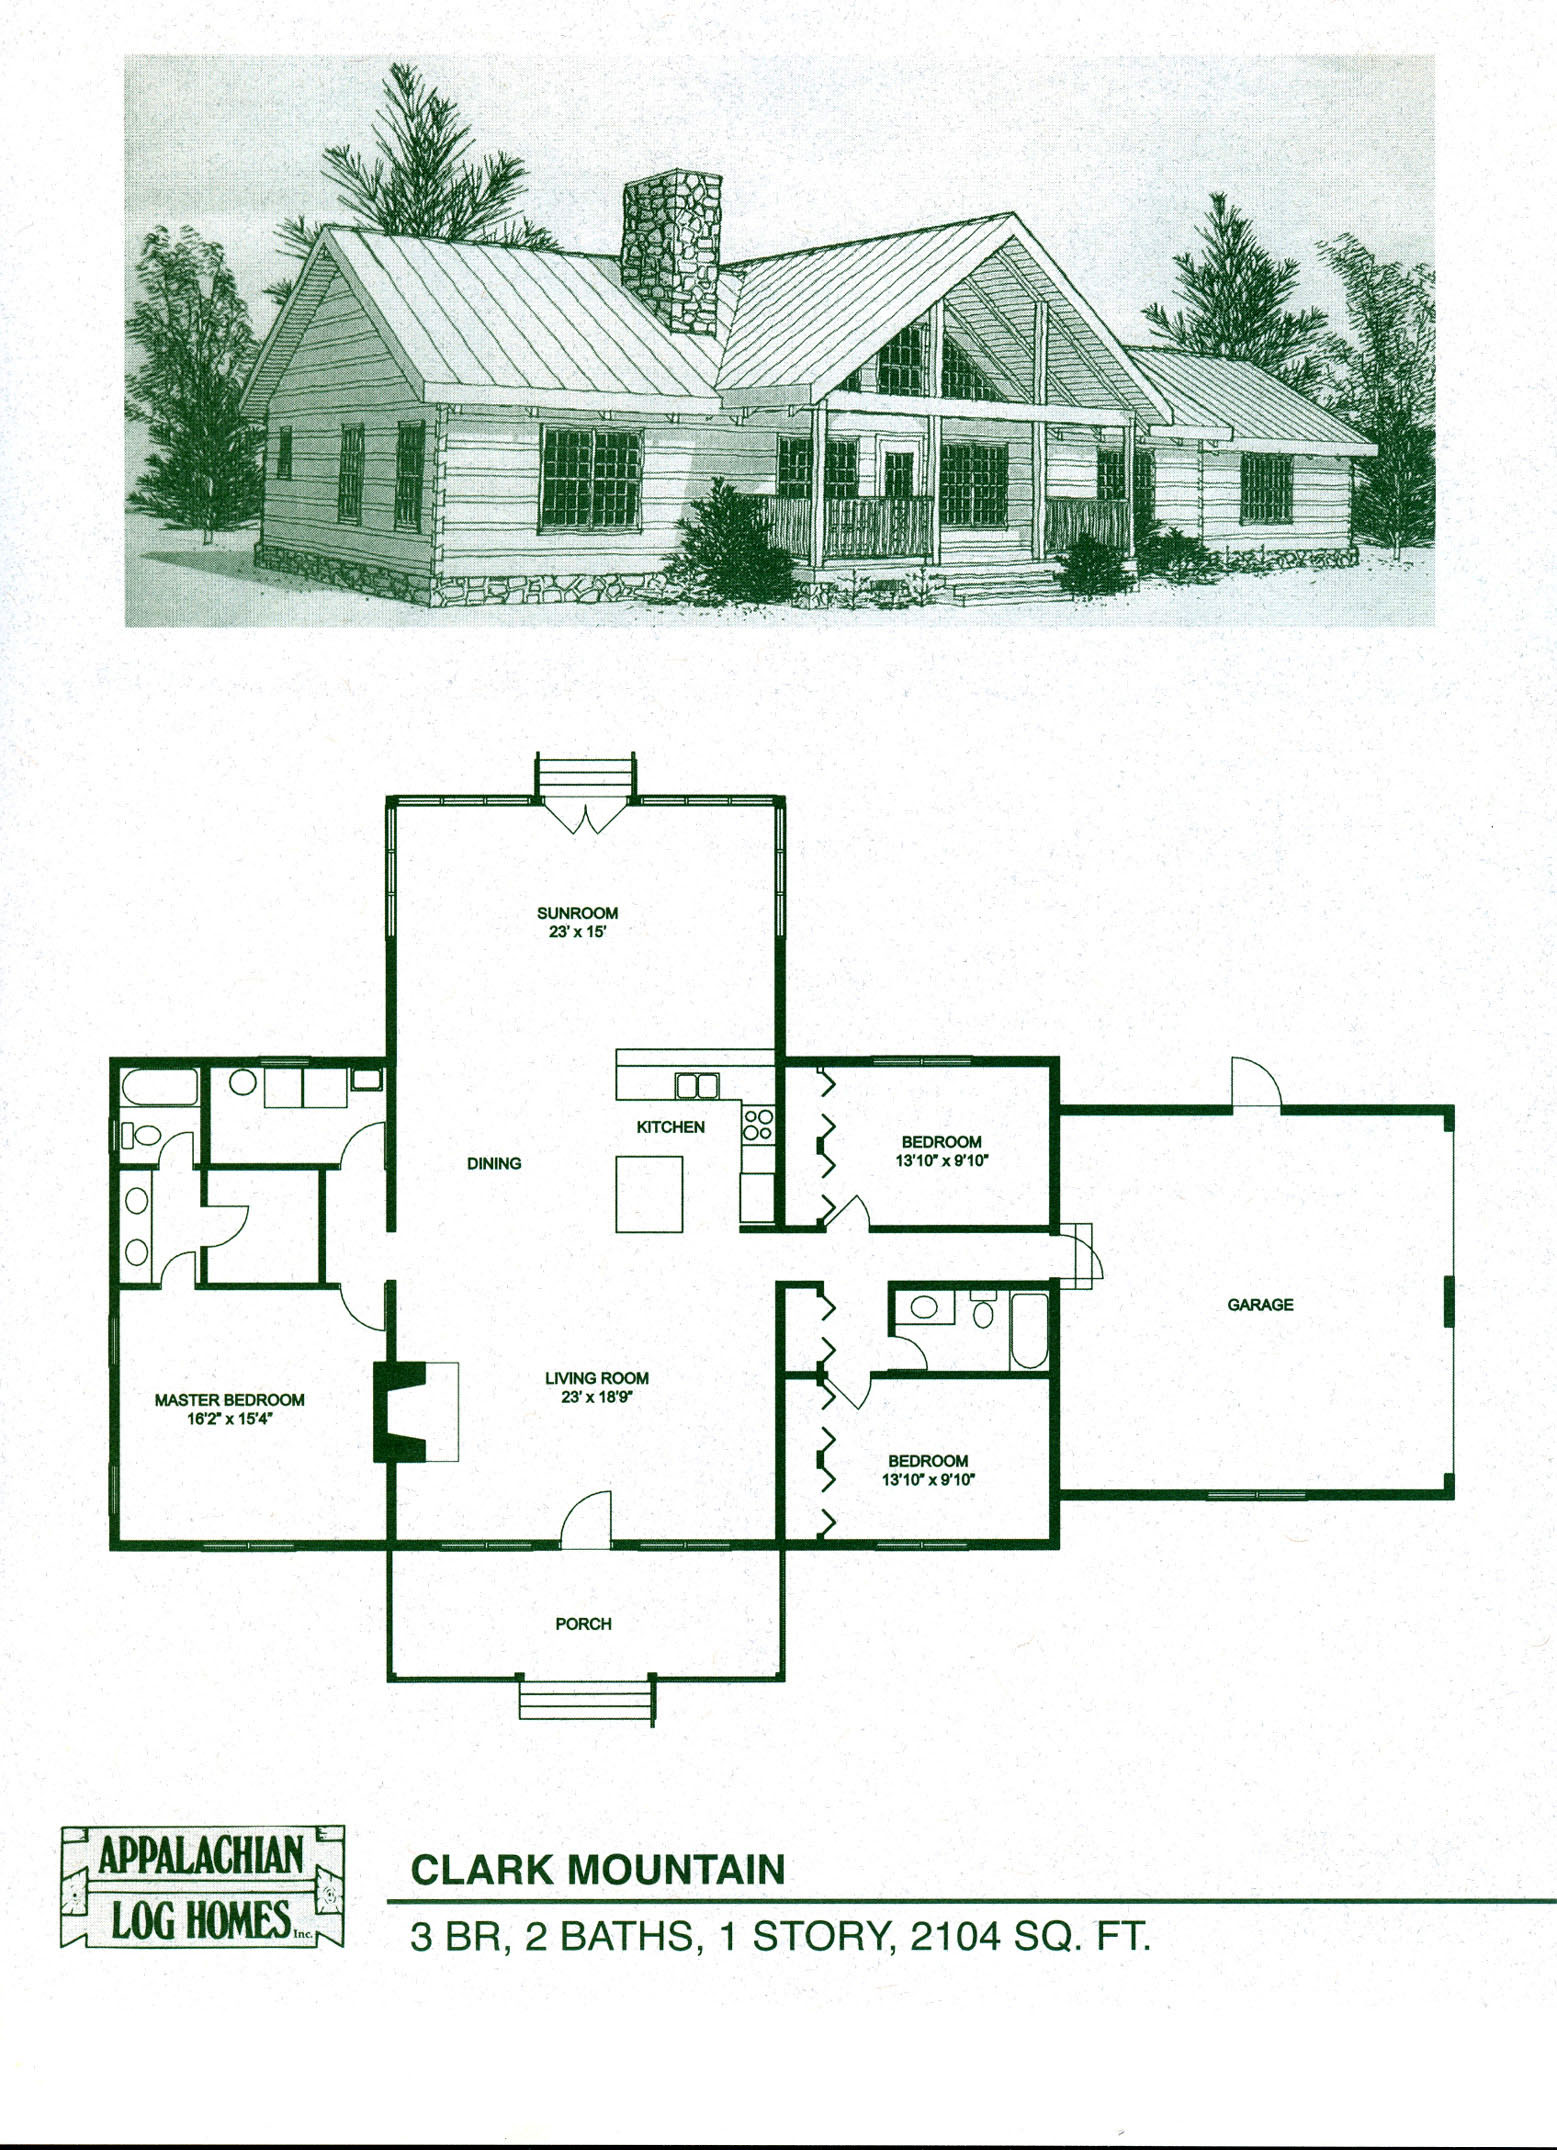 Log cabin loft 2 bedroom log cabin homes floor plans log for 2 bedroom log cabin plans